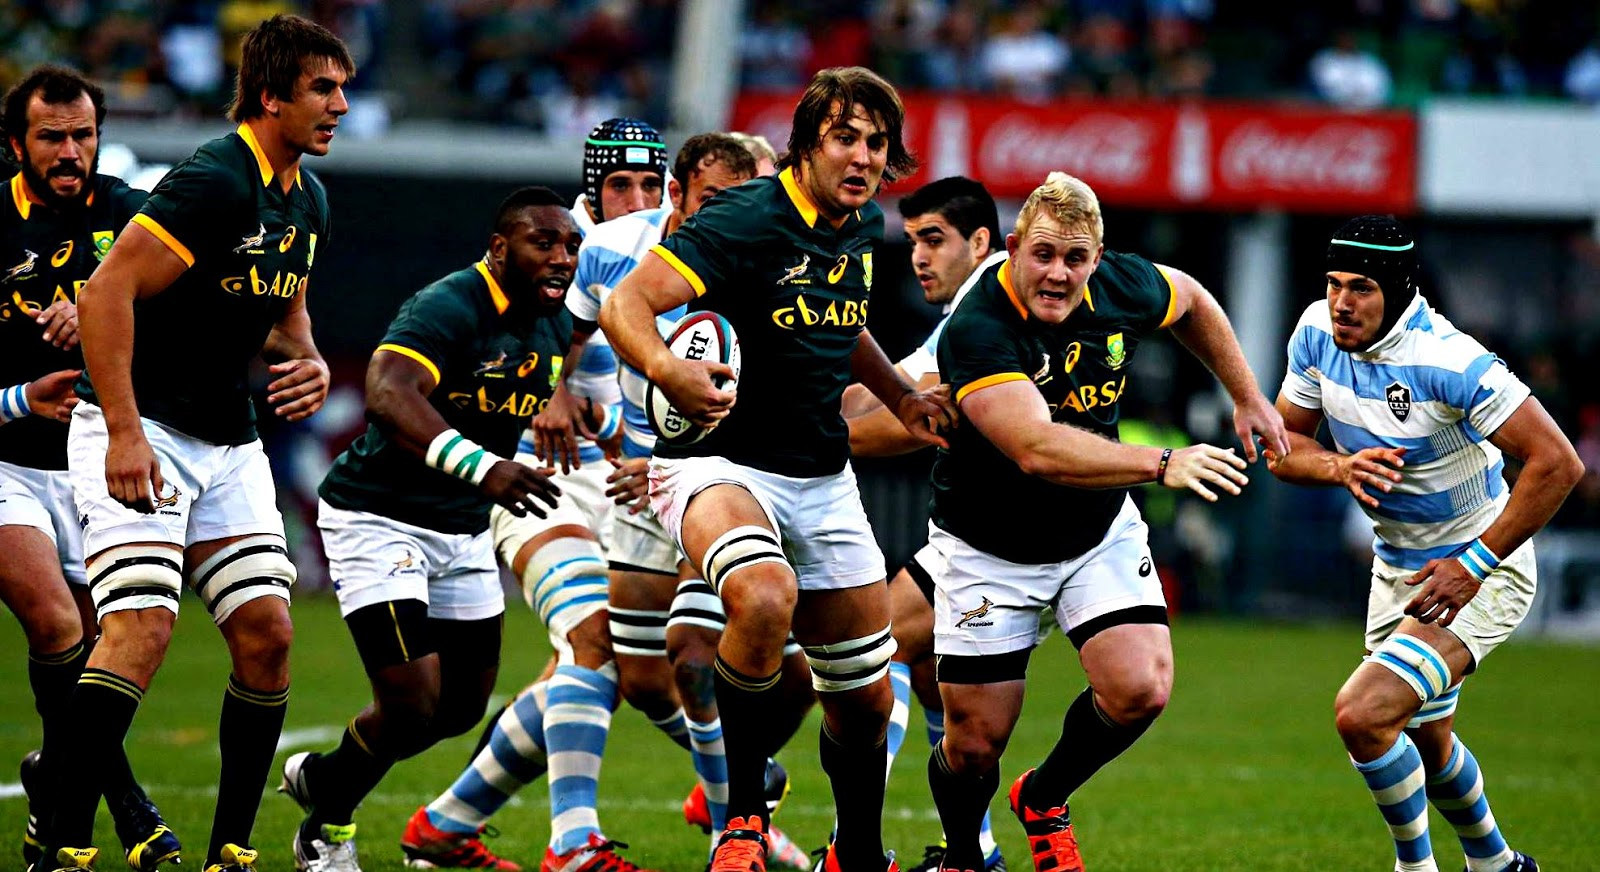 africa south rugby sports japan vs team sa jager lood irb springbok cup wc during sky brighton dominate australia week